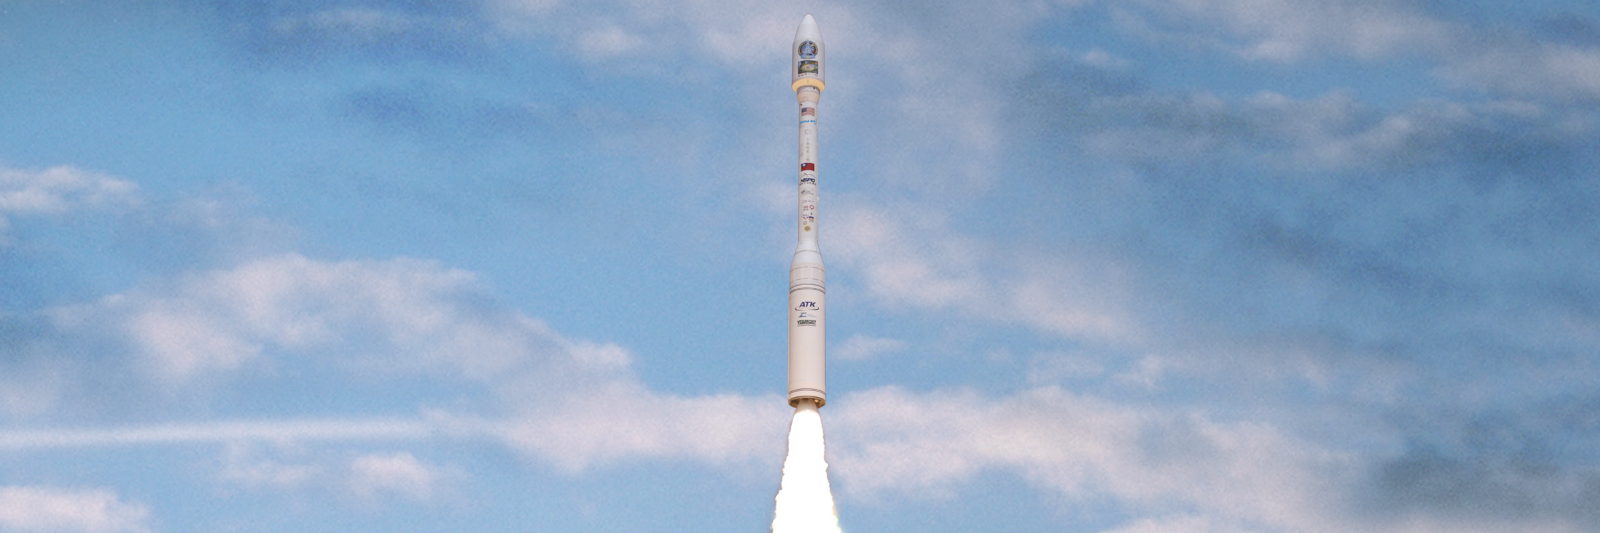 Minotaur-C launch